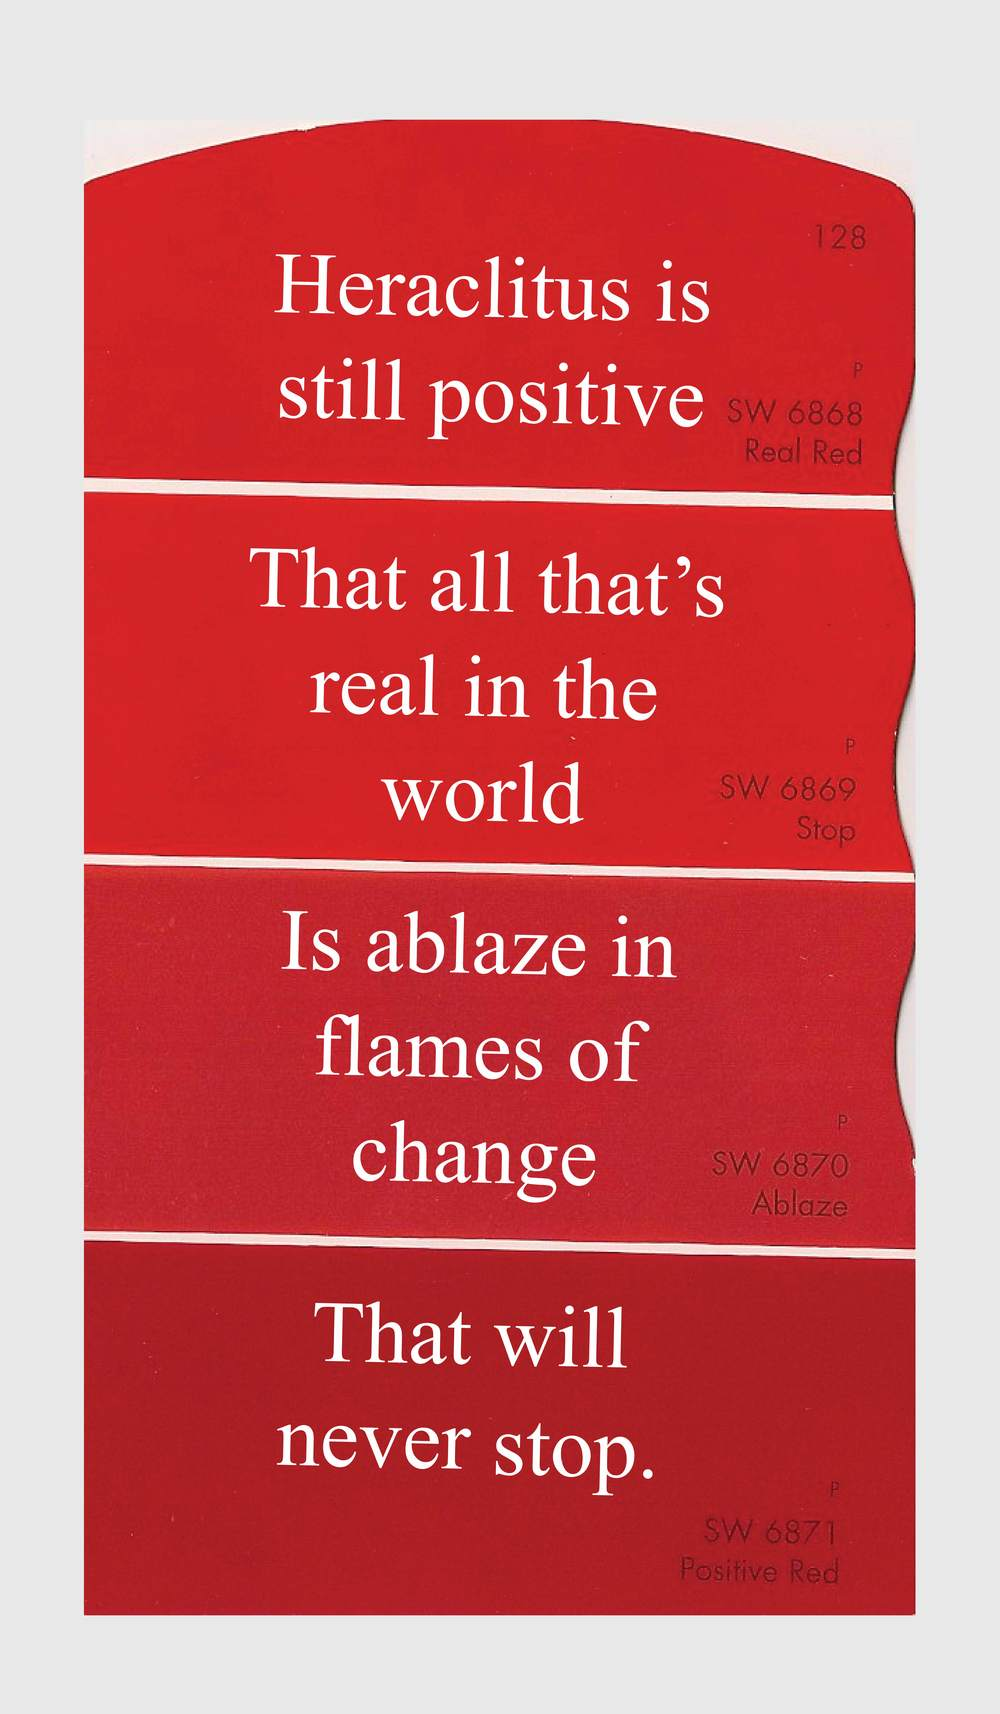 Real Red, Stop, Ablaze, Positive Red